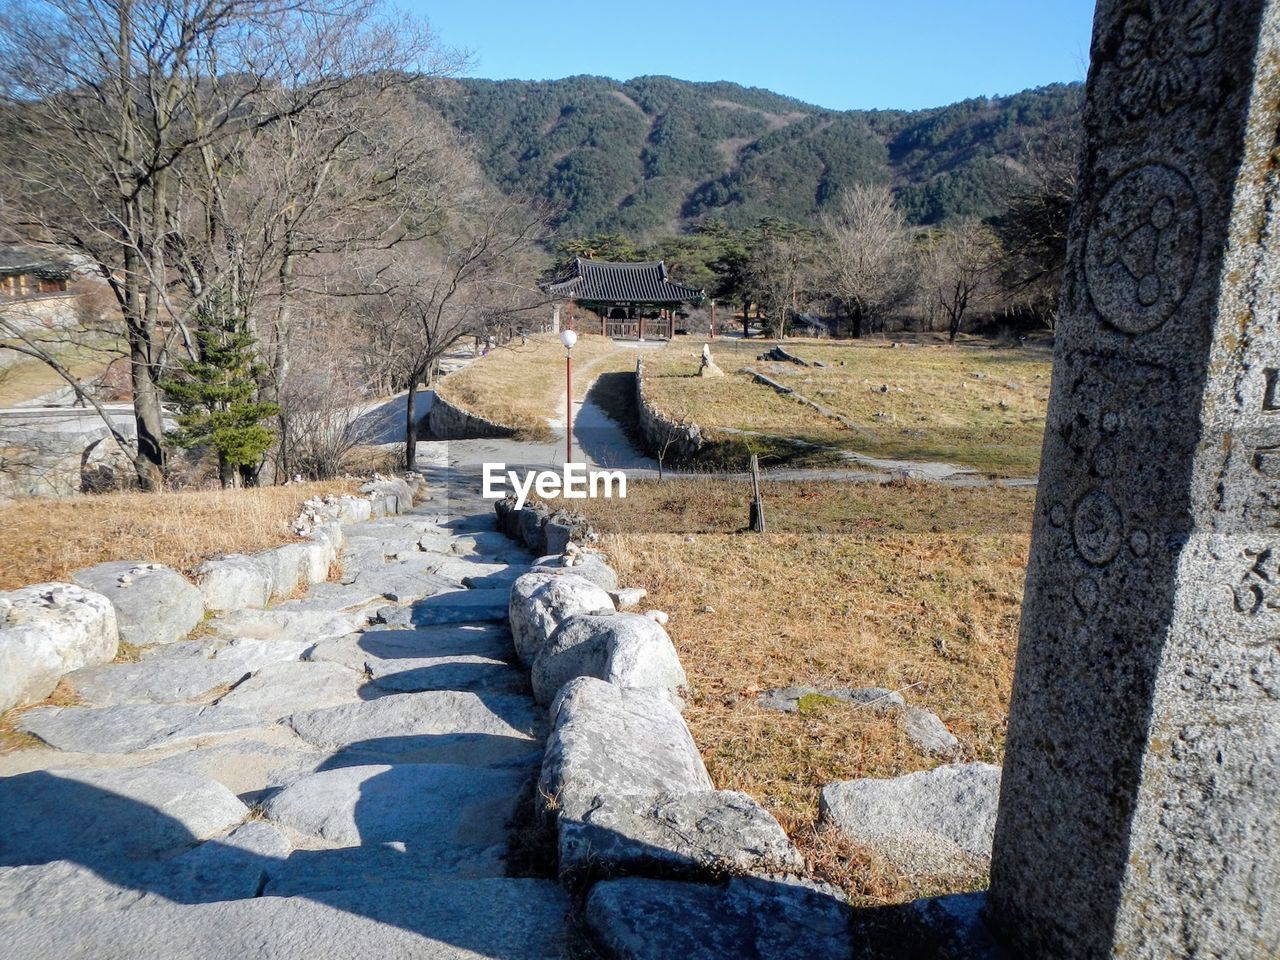 architecture, built structure, tree, solid, sky, no people, day, nature, mountain, landscape, plant, sunlight, rock, rock - object, tranquility, outdoors, scenics - nature, tranquil scene, environment, history, stone wall